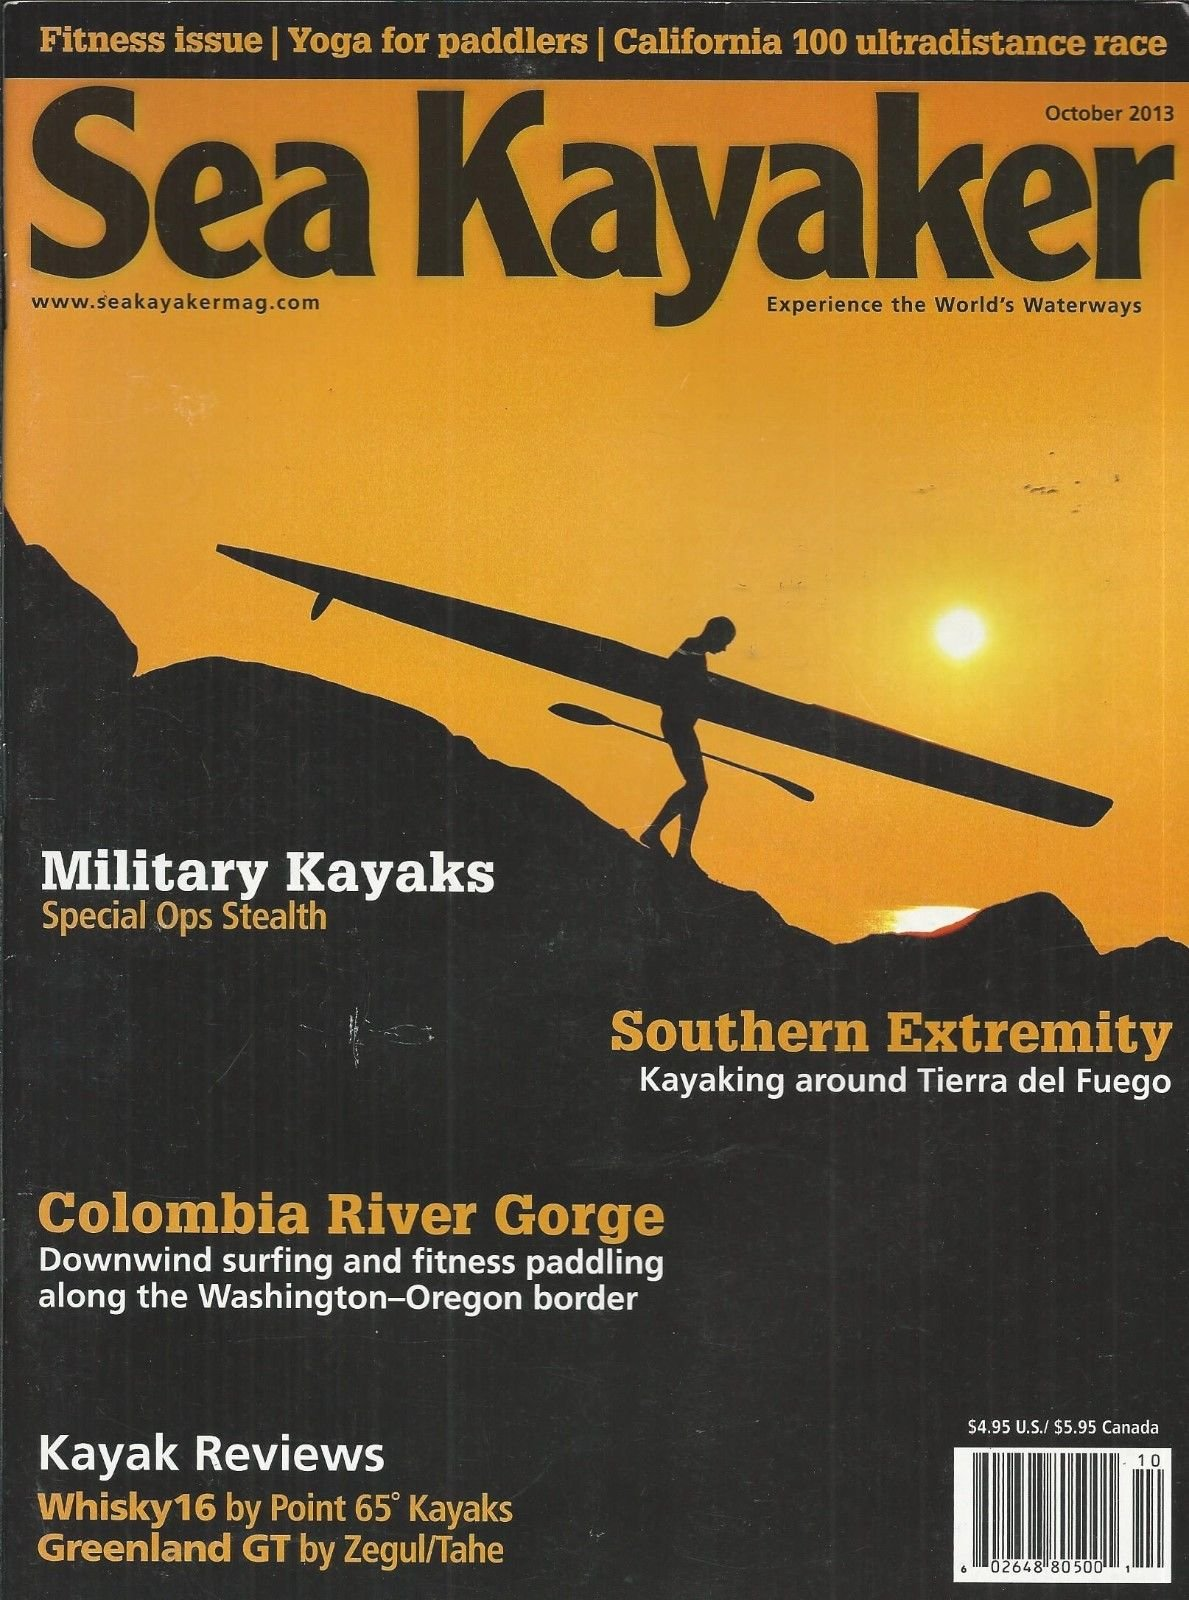 Sea Kayaker magazine October 2013